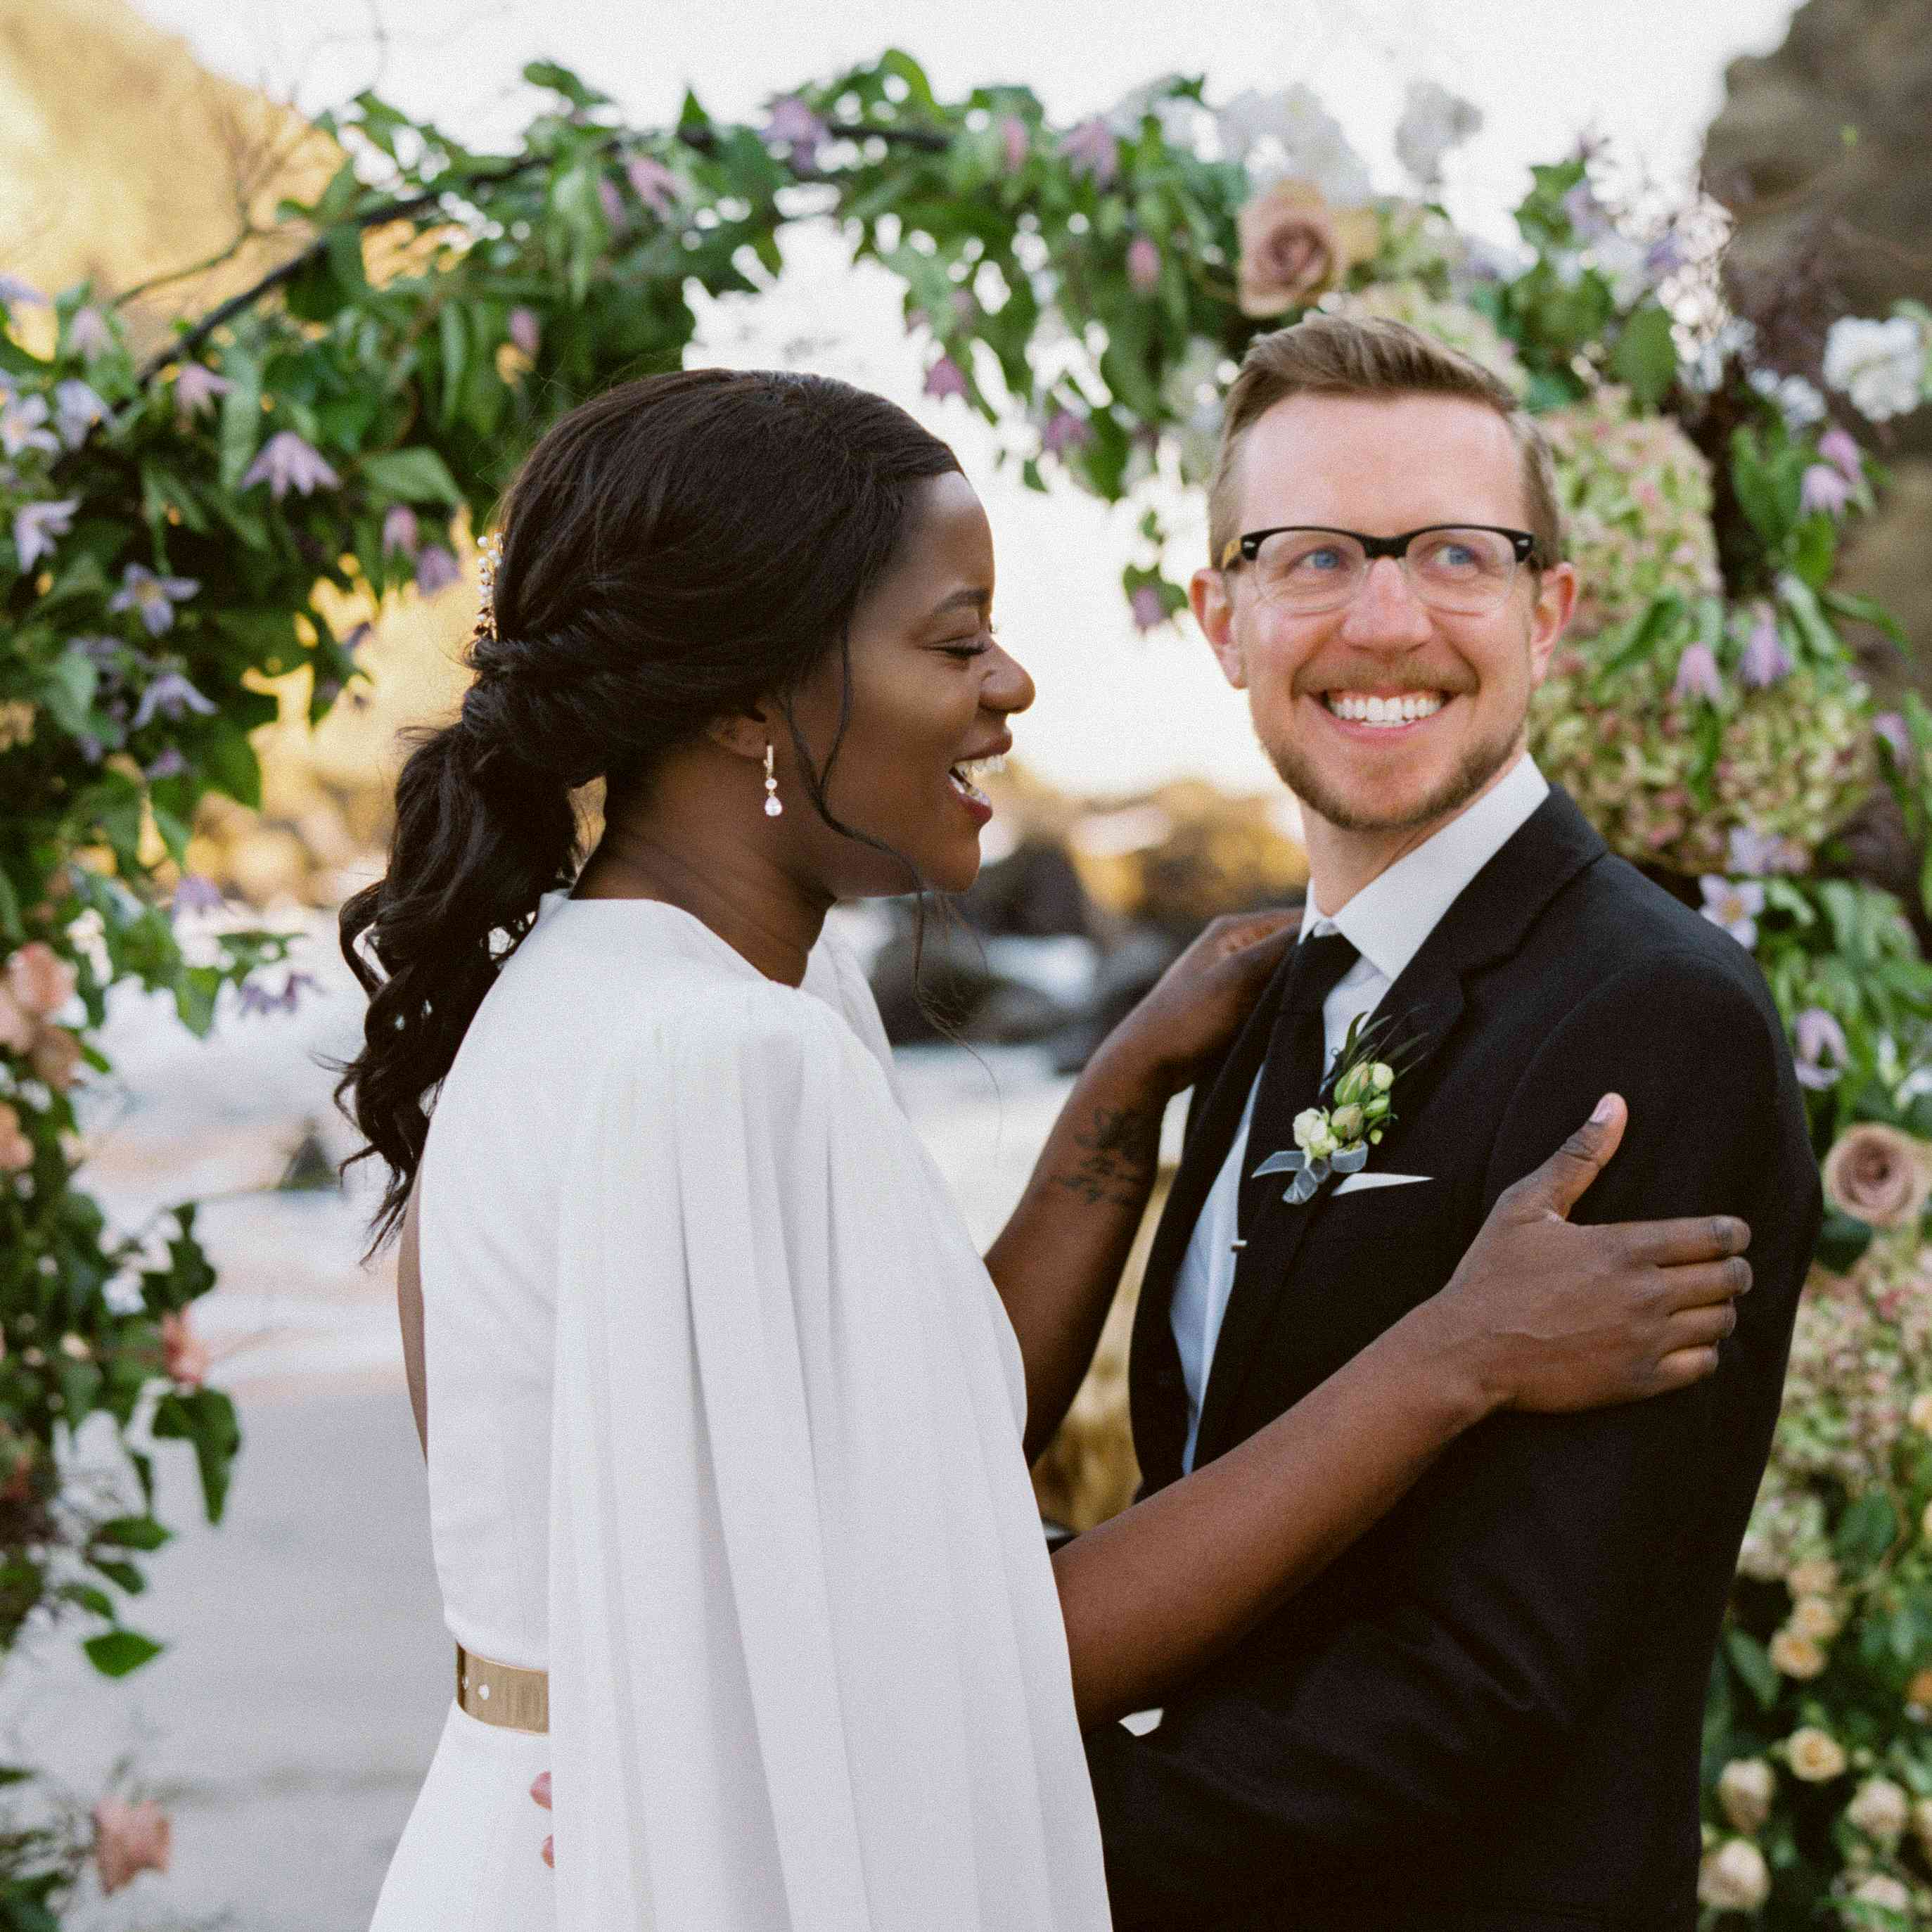 Laughing bride and groom in front of floral arch